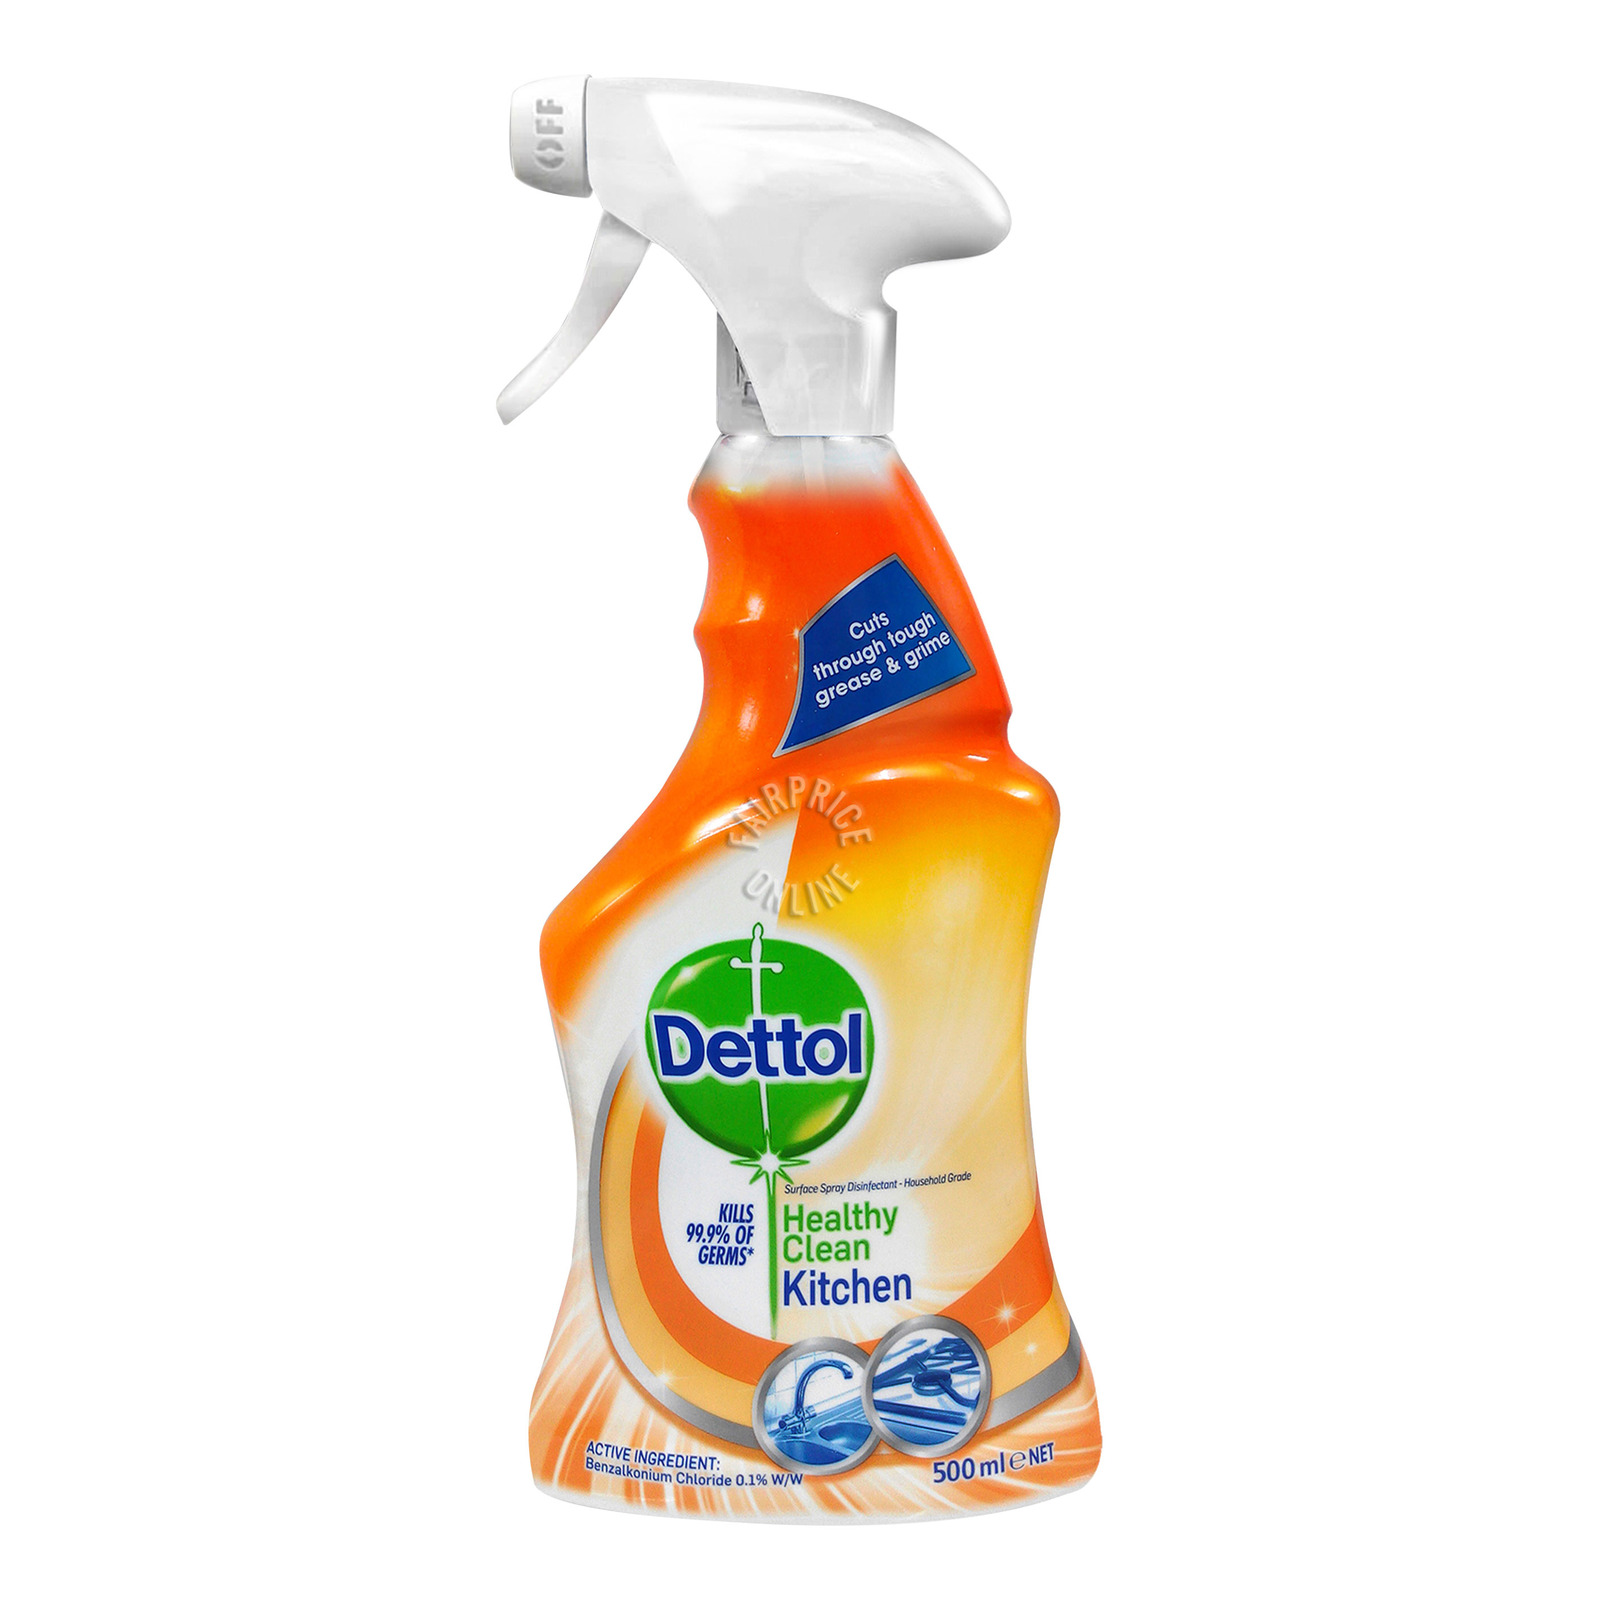 Dettol Anti-Bacterial Trigger Spray - Kitchen